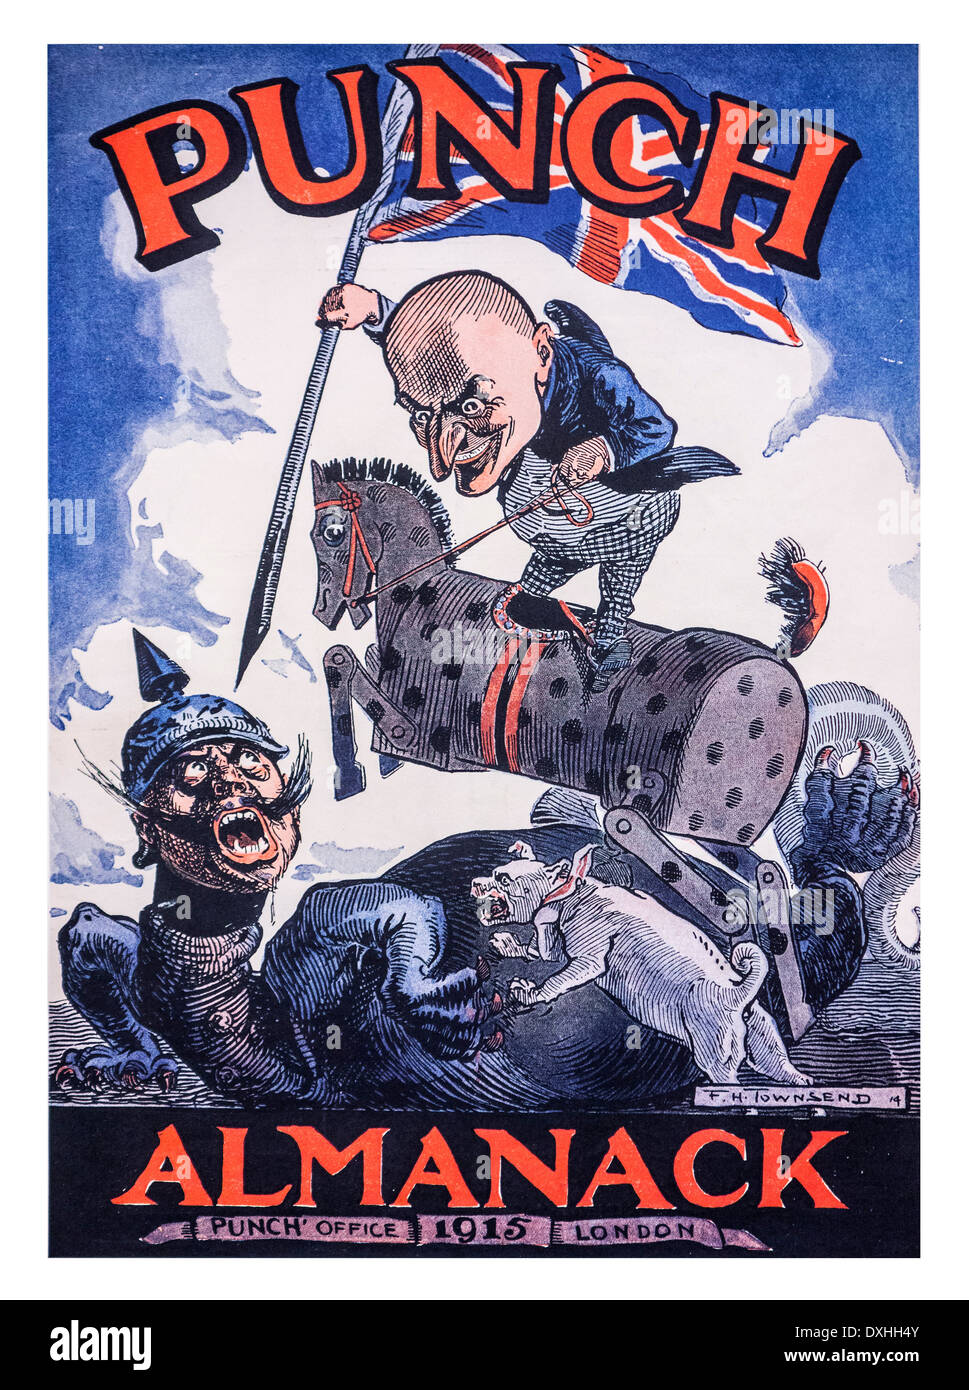 WWI British cartoon by F. H. Townsend for the 1915 Punch's Almanack front cover during the First World War One - Stock Image